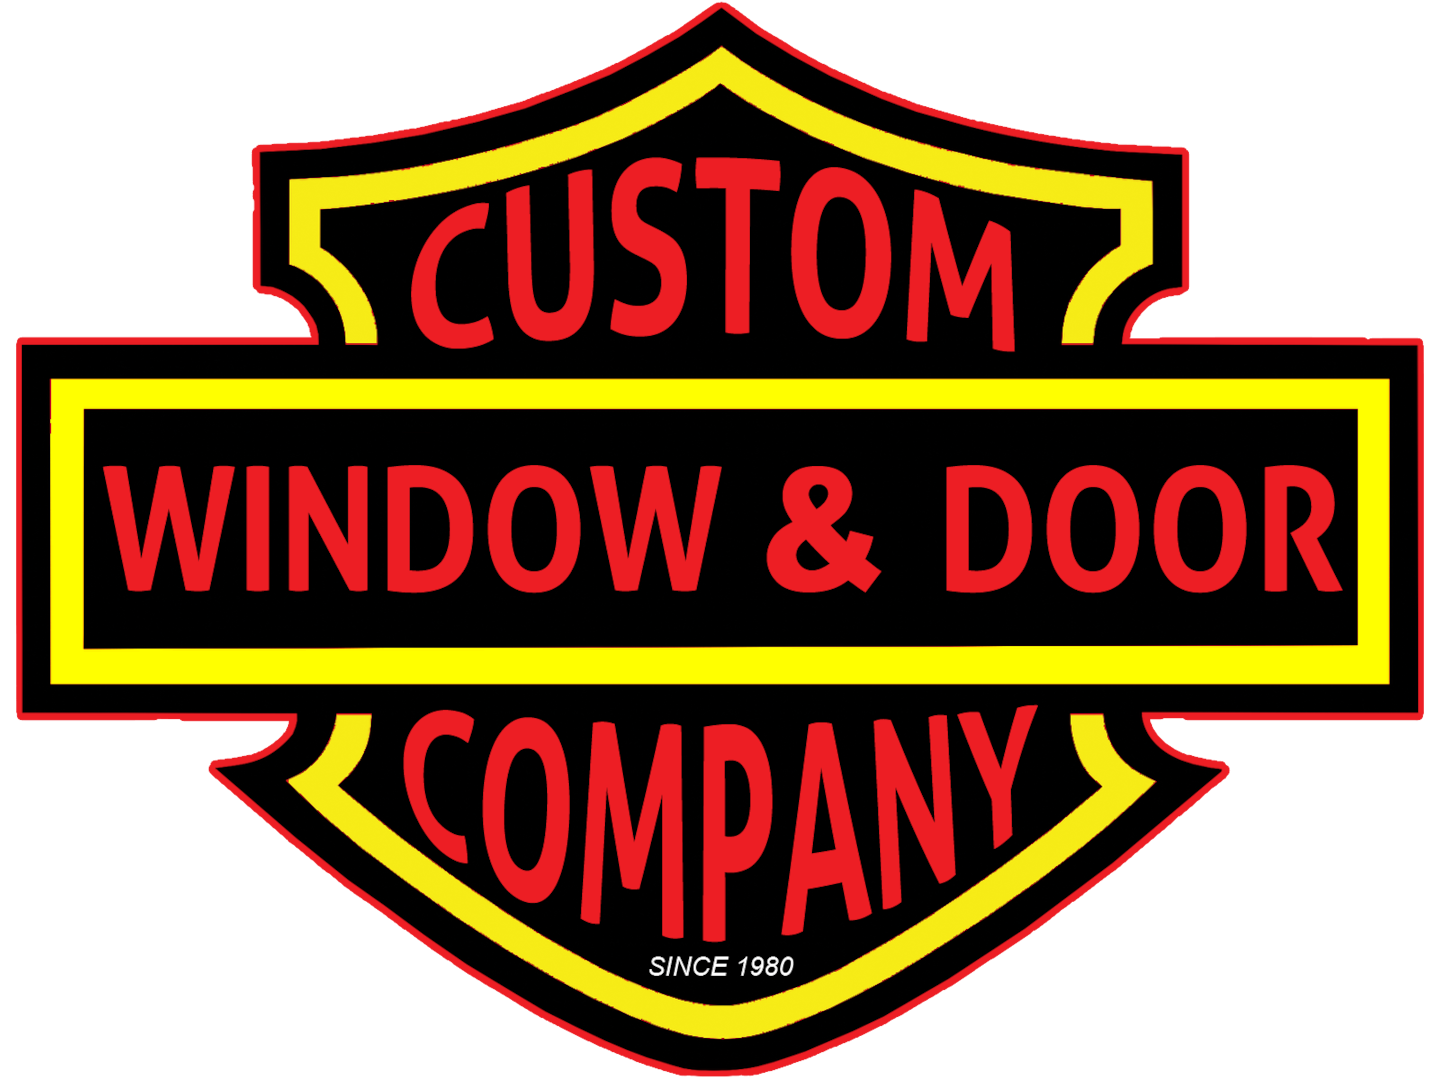 Custom Window Door & Siding Inc